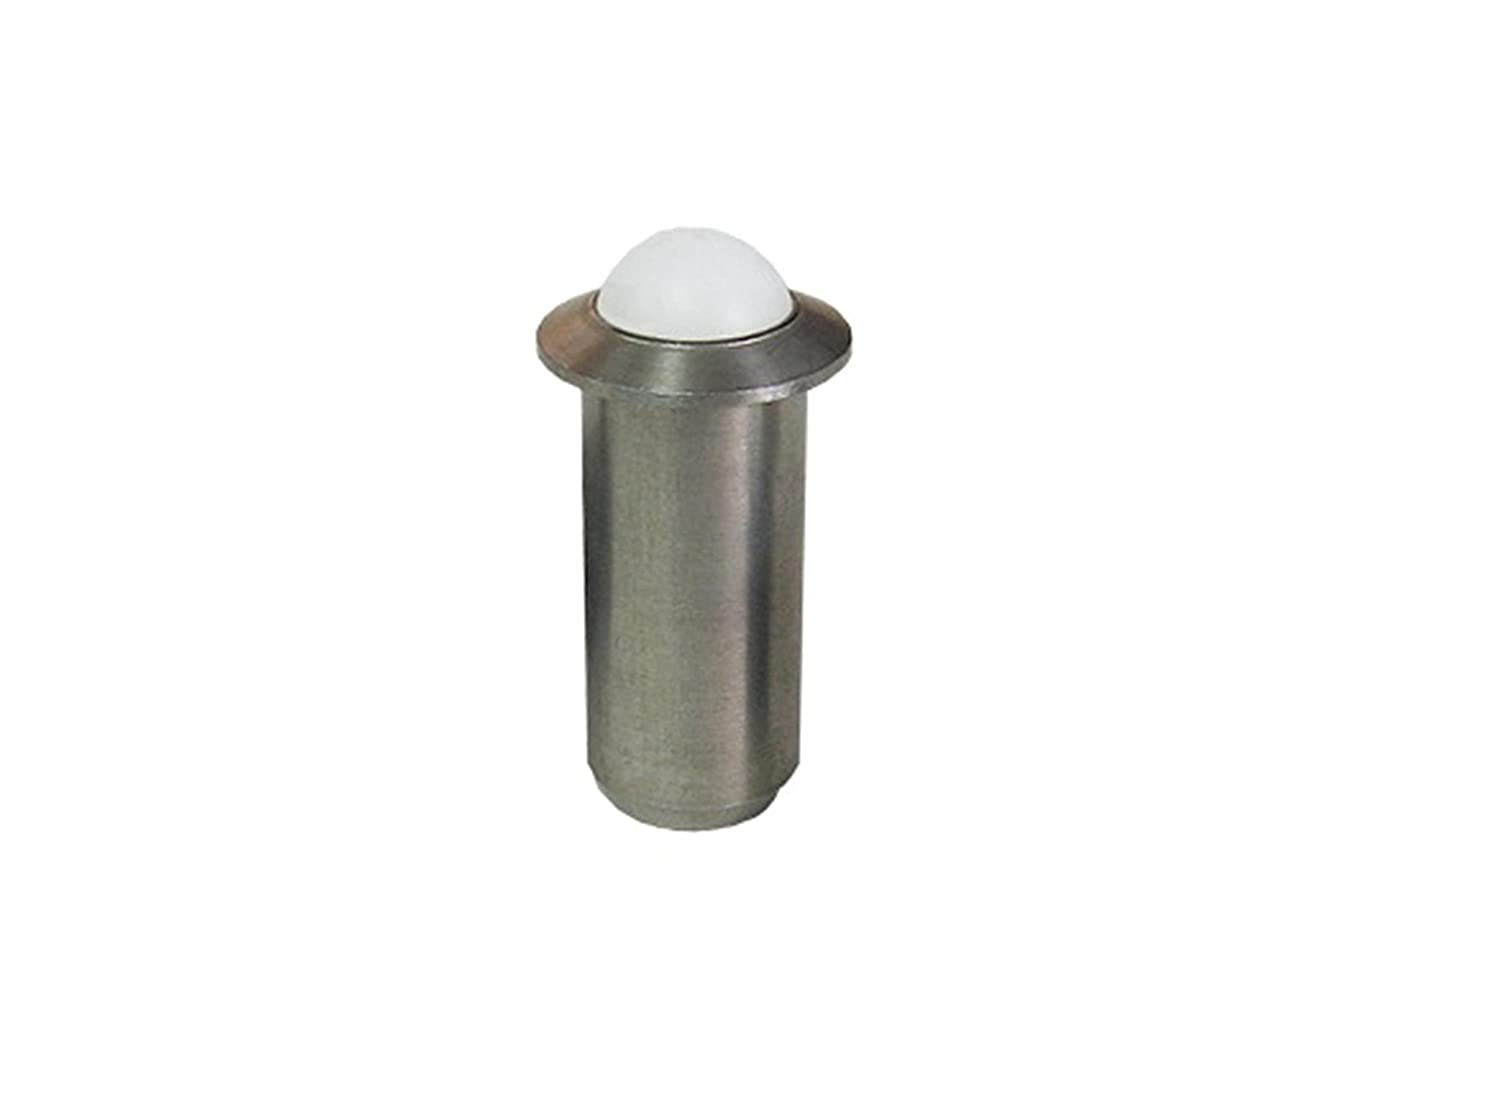 Ball /& Spring Plunger SSWPFN10-4B Press Fit Ball Nose Plunger Standard End Force with Nylon Ball S/&W Manufacturing Co Inc.